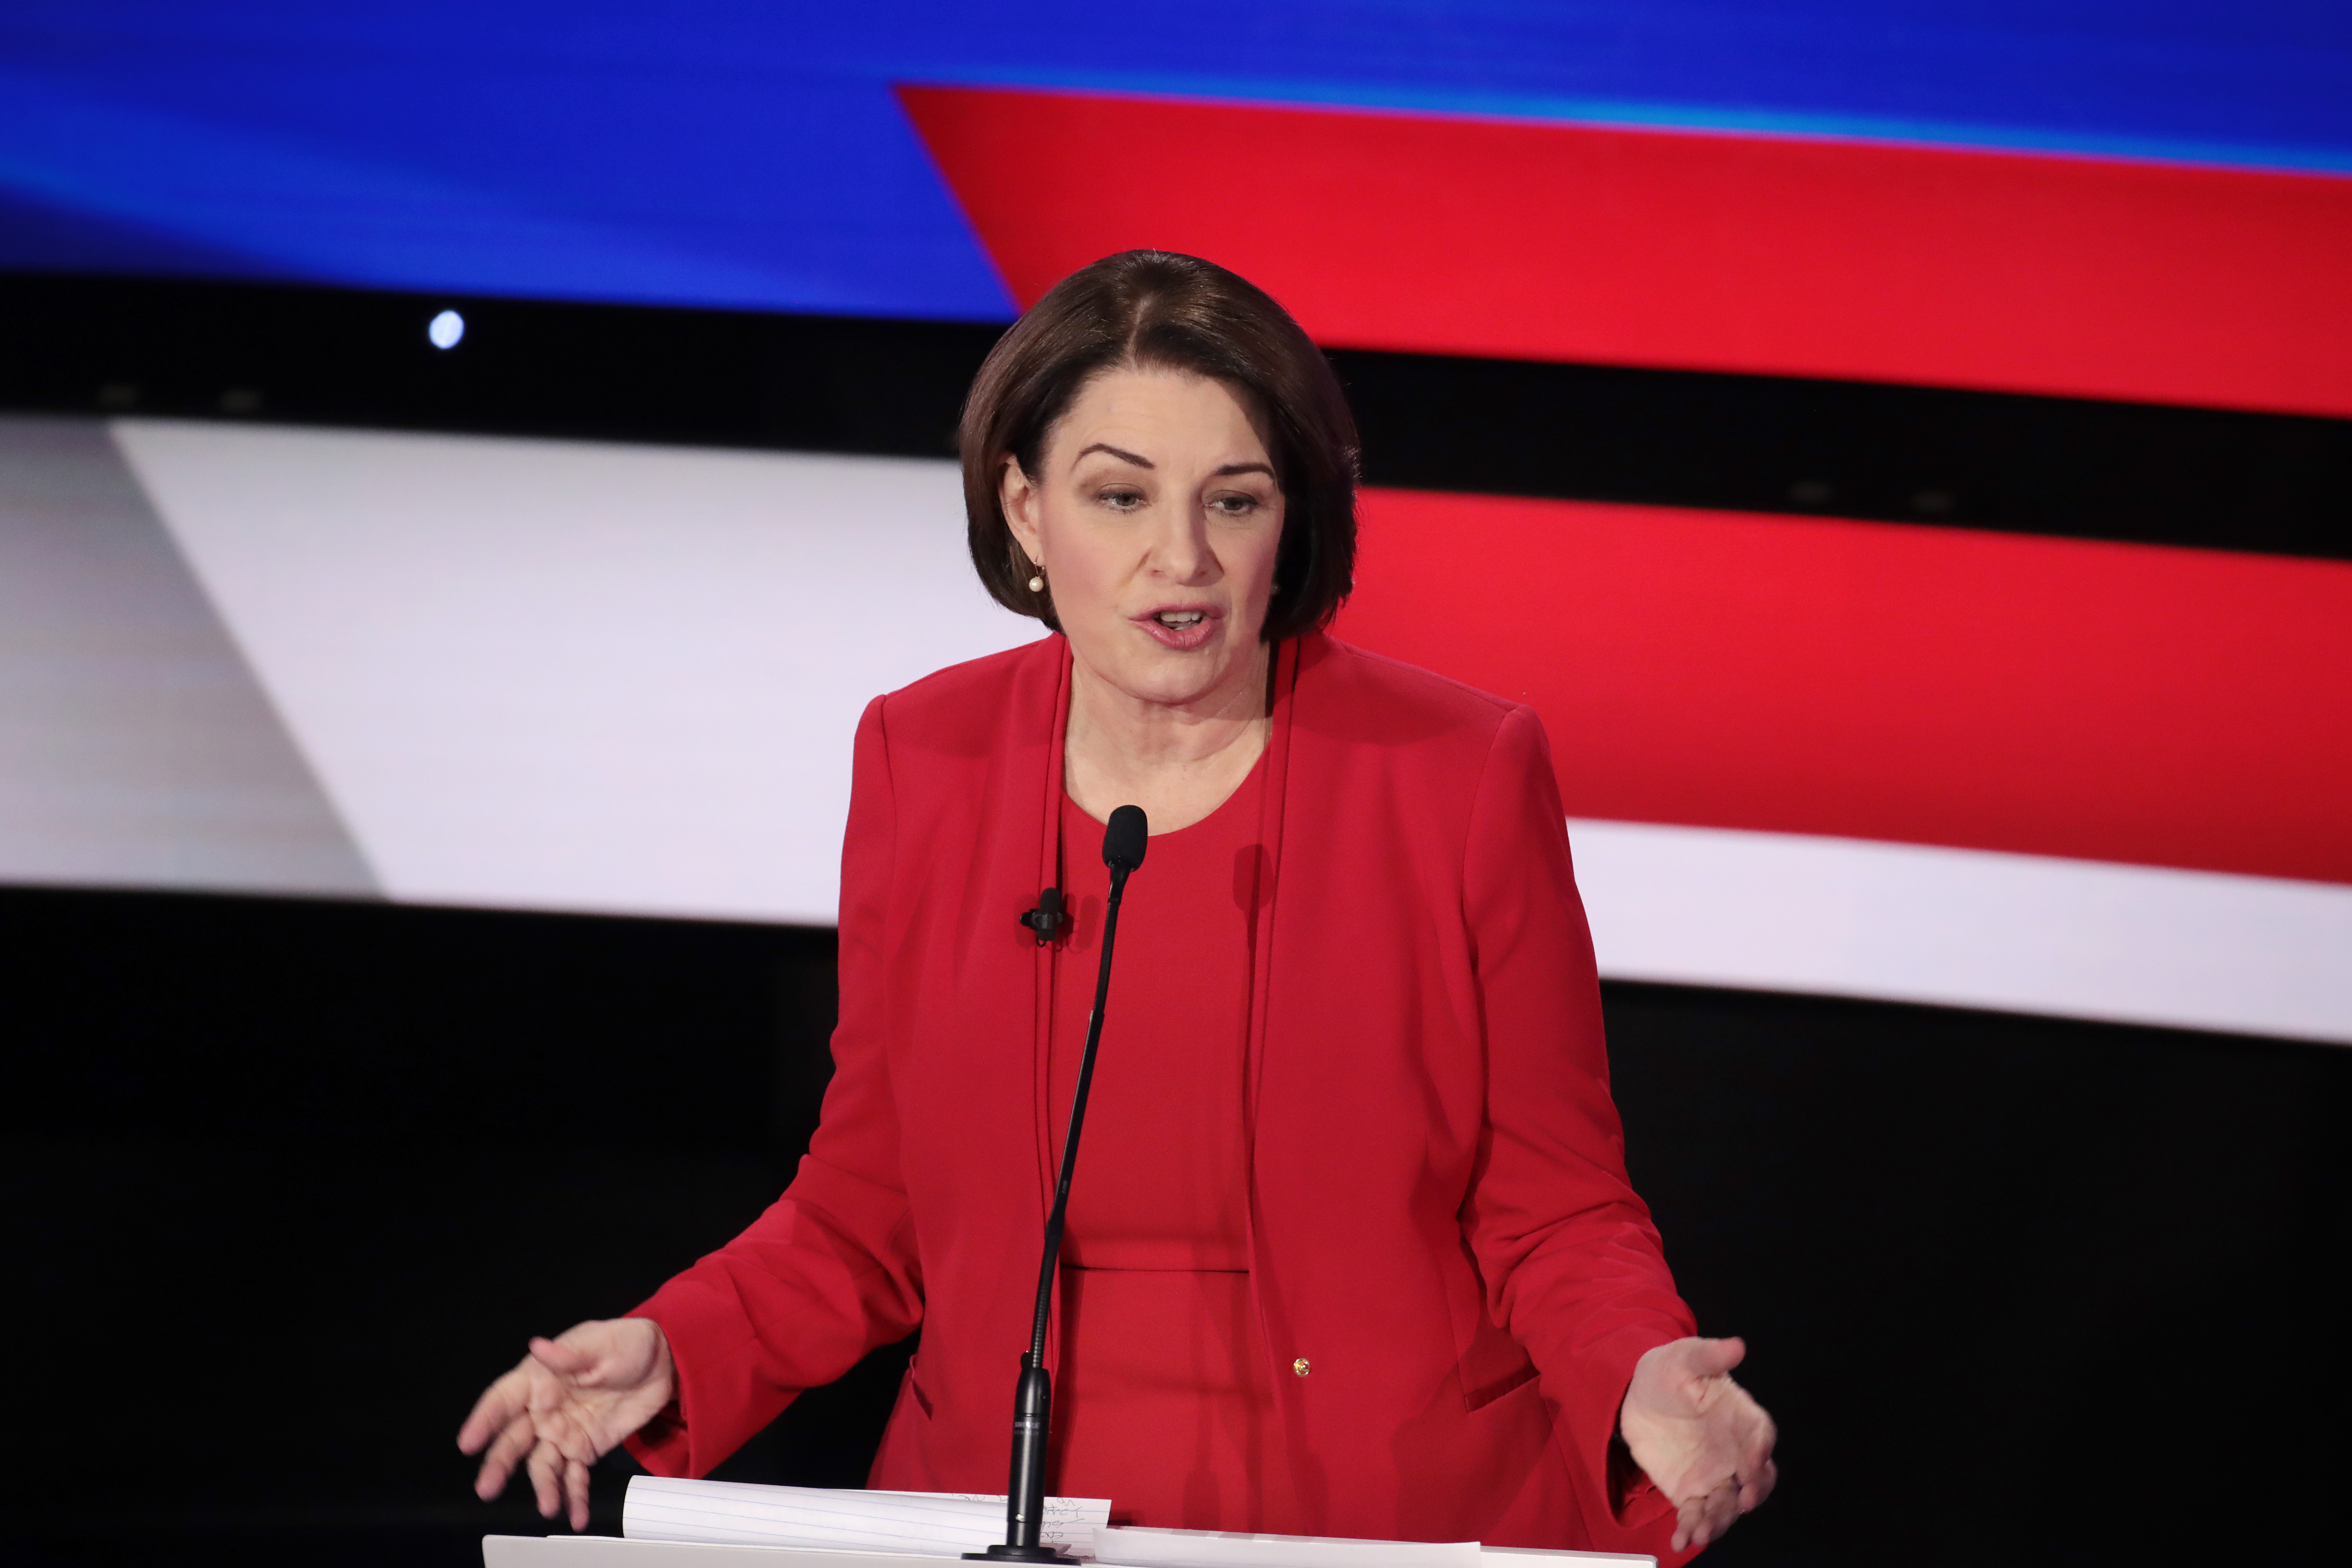 Sen. Amy Klobuchar (D-MN) speaks during the Democratic presidential primary debate at Drake University on January 14, 2020 in Des Moines, Iowa. (Scott Olson/Getty Images)